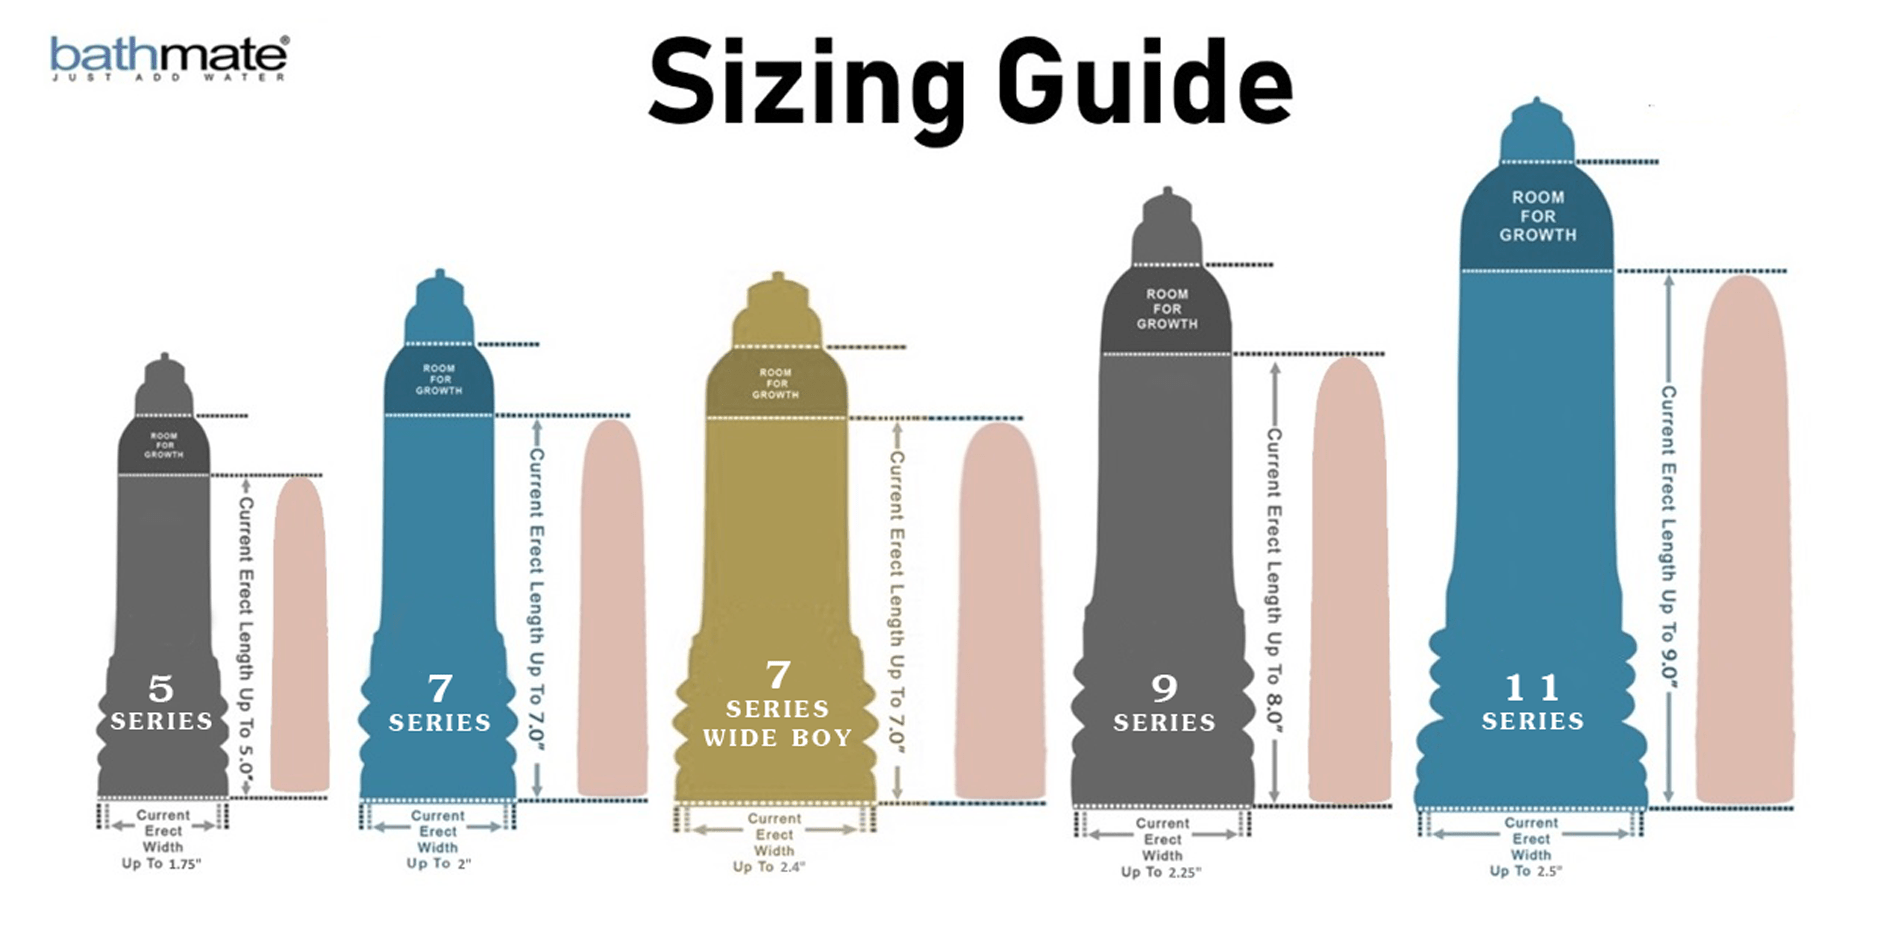 bathmate sizing guide